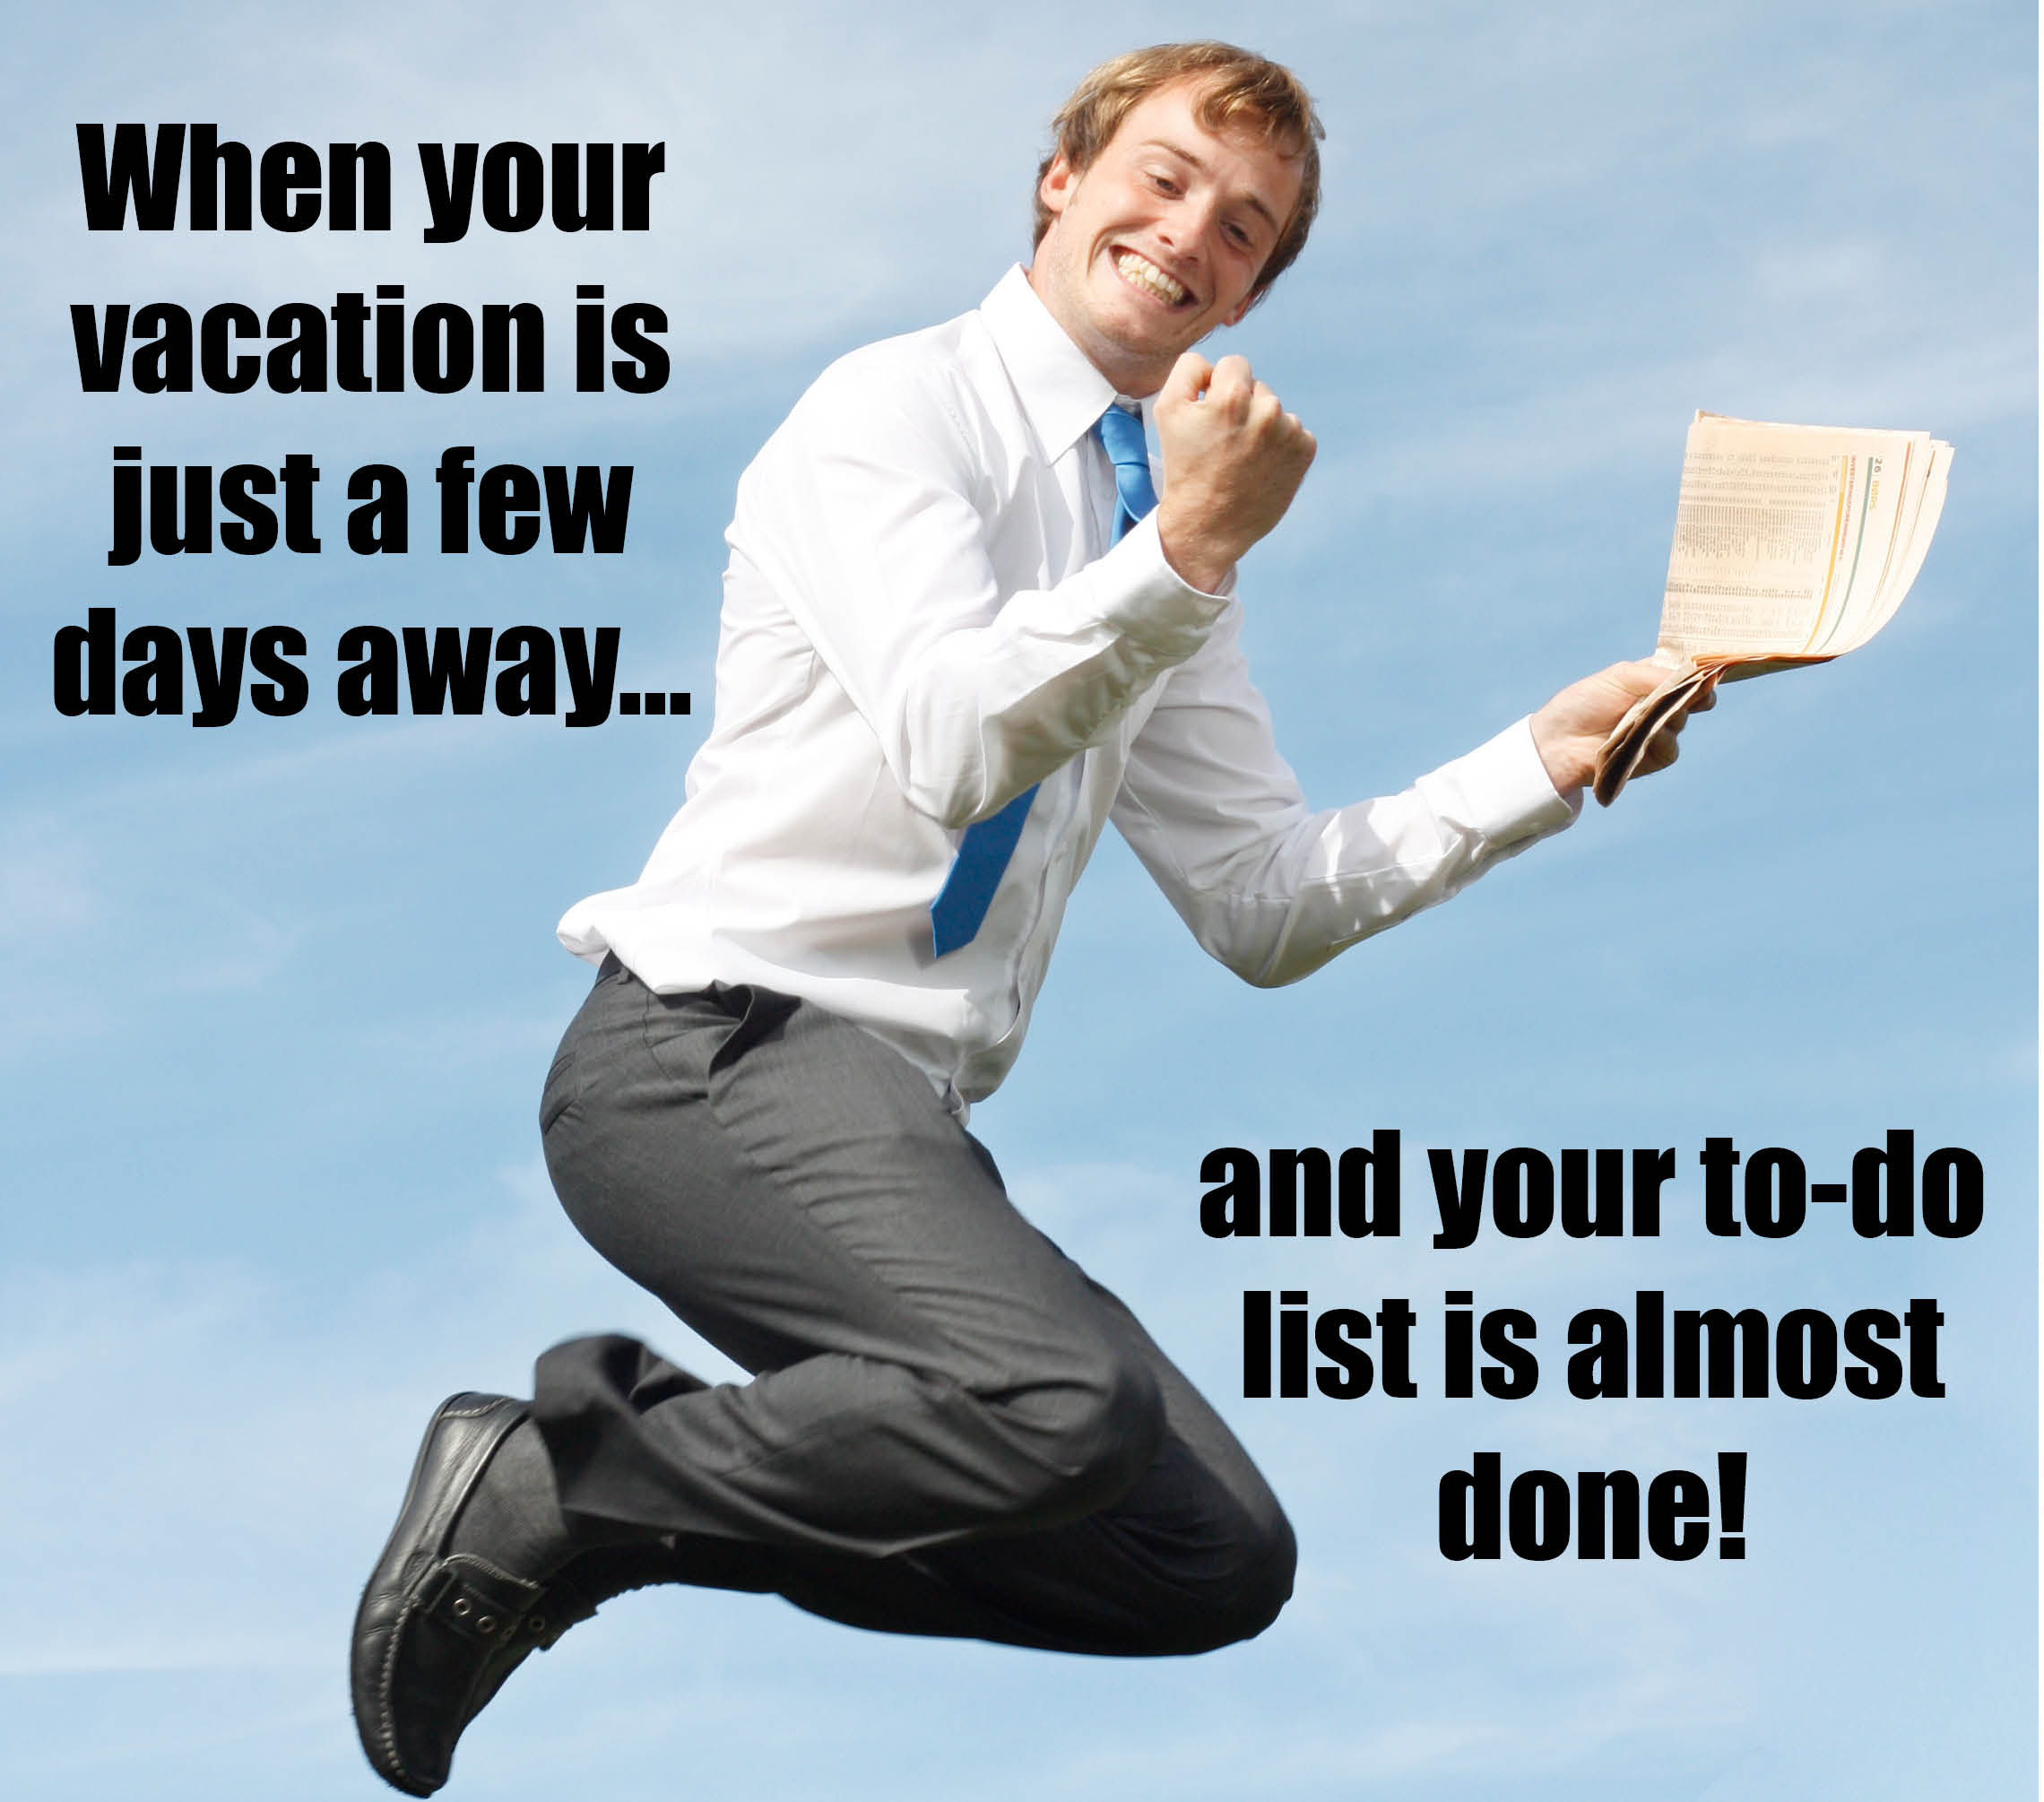 How to Stay Focused as Your Vacation Draws Near | Digital ...